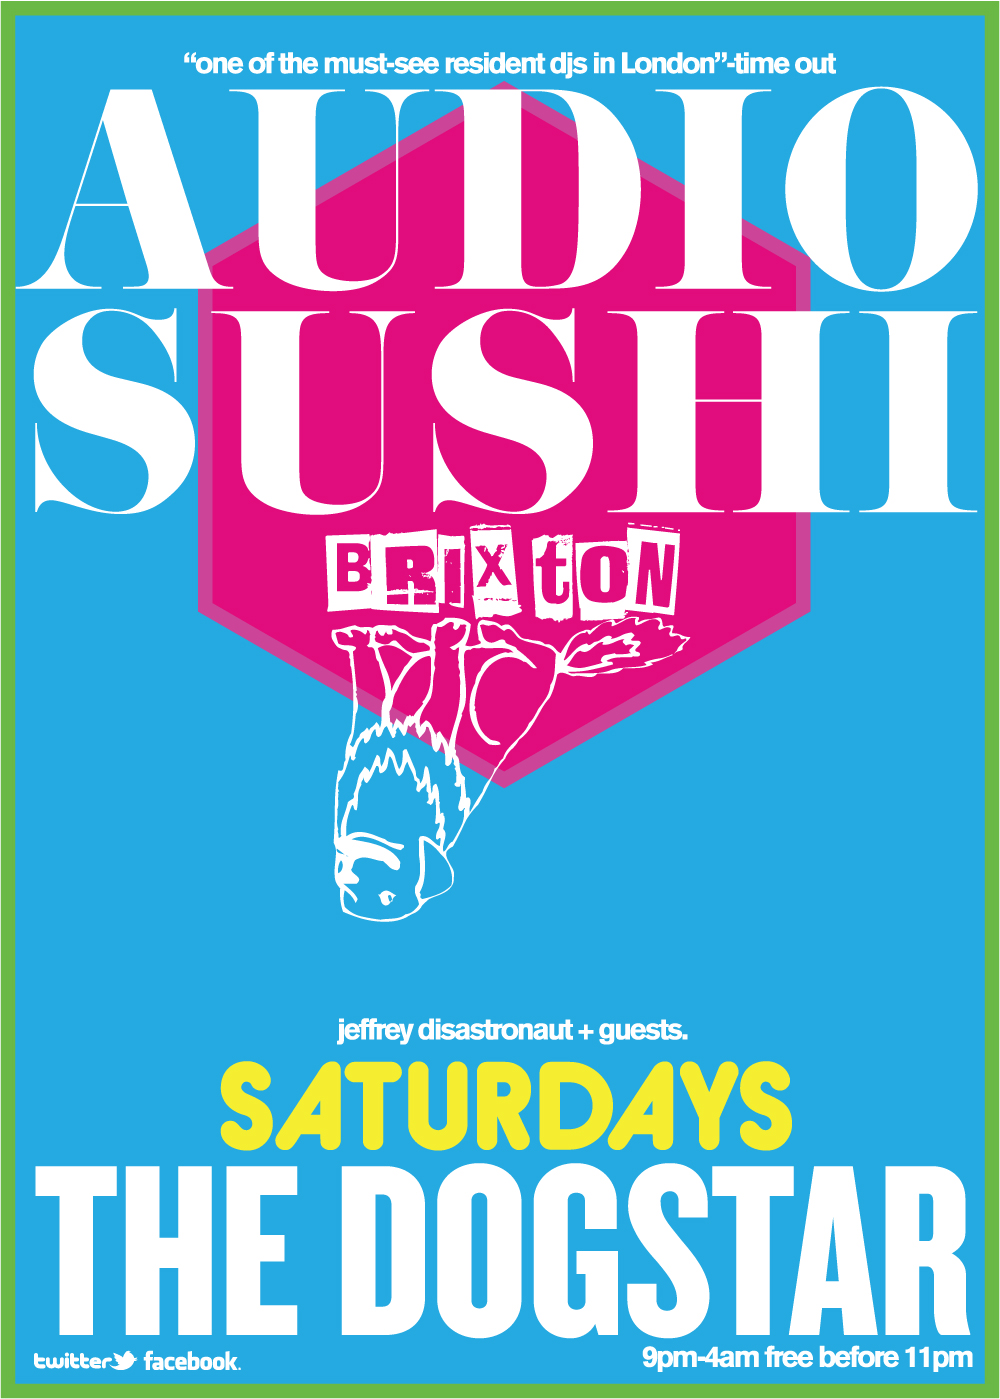 Disastronaut / audiosushi / london / dogstar brixton saturdays